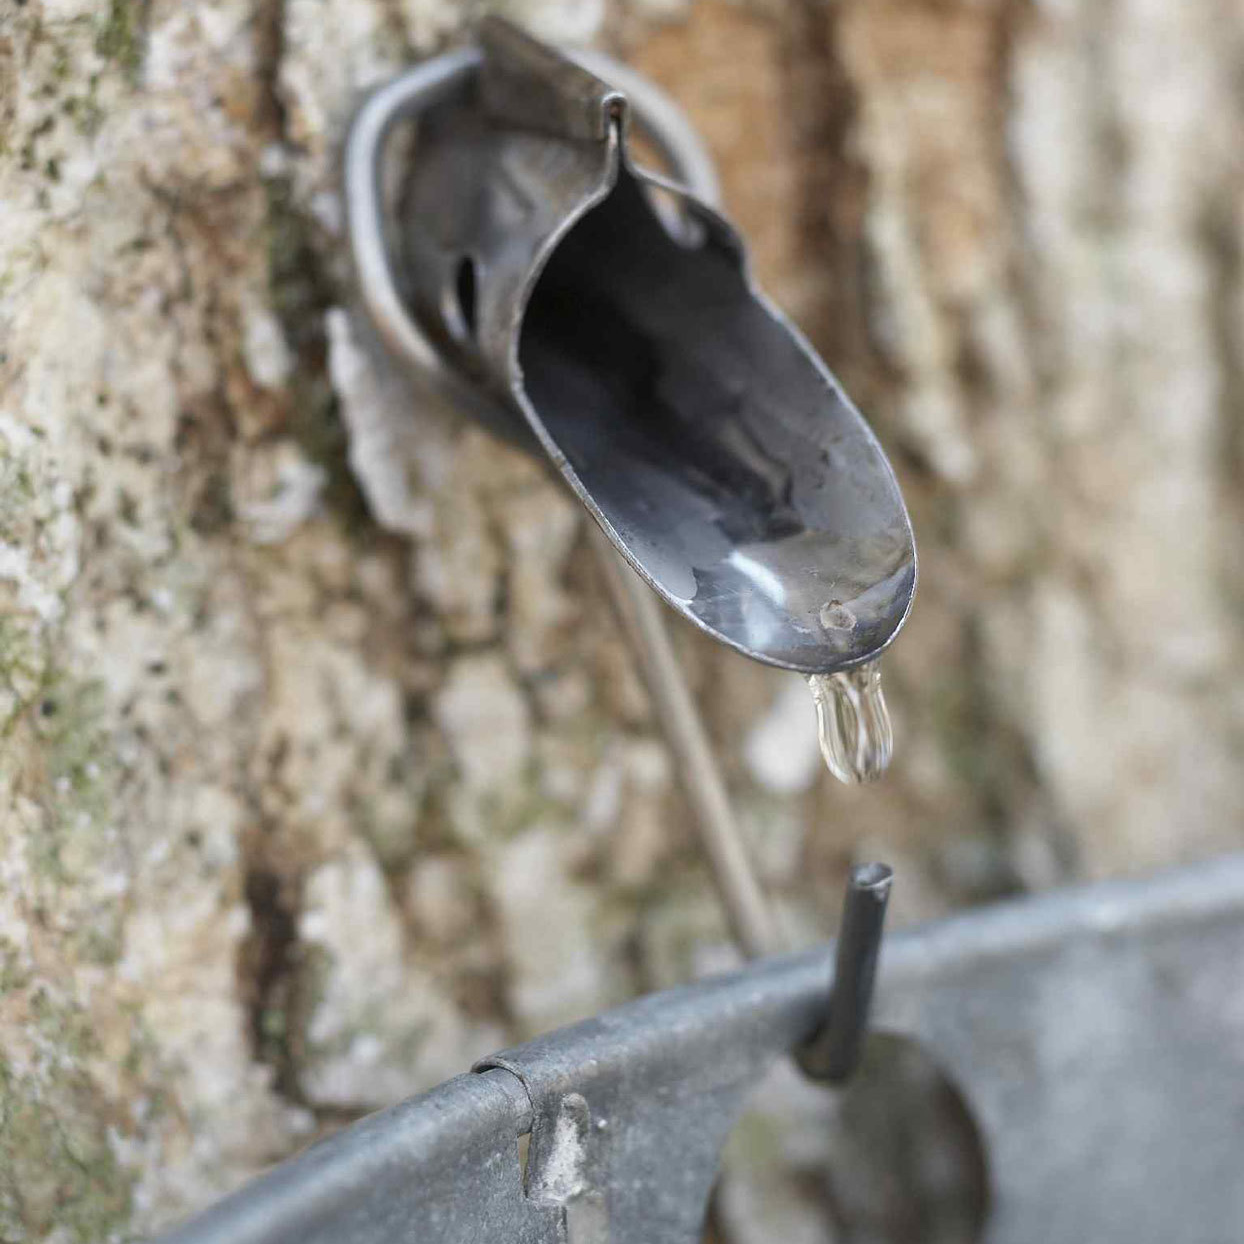 Sap dripping from tap into bucket